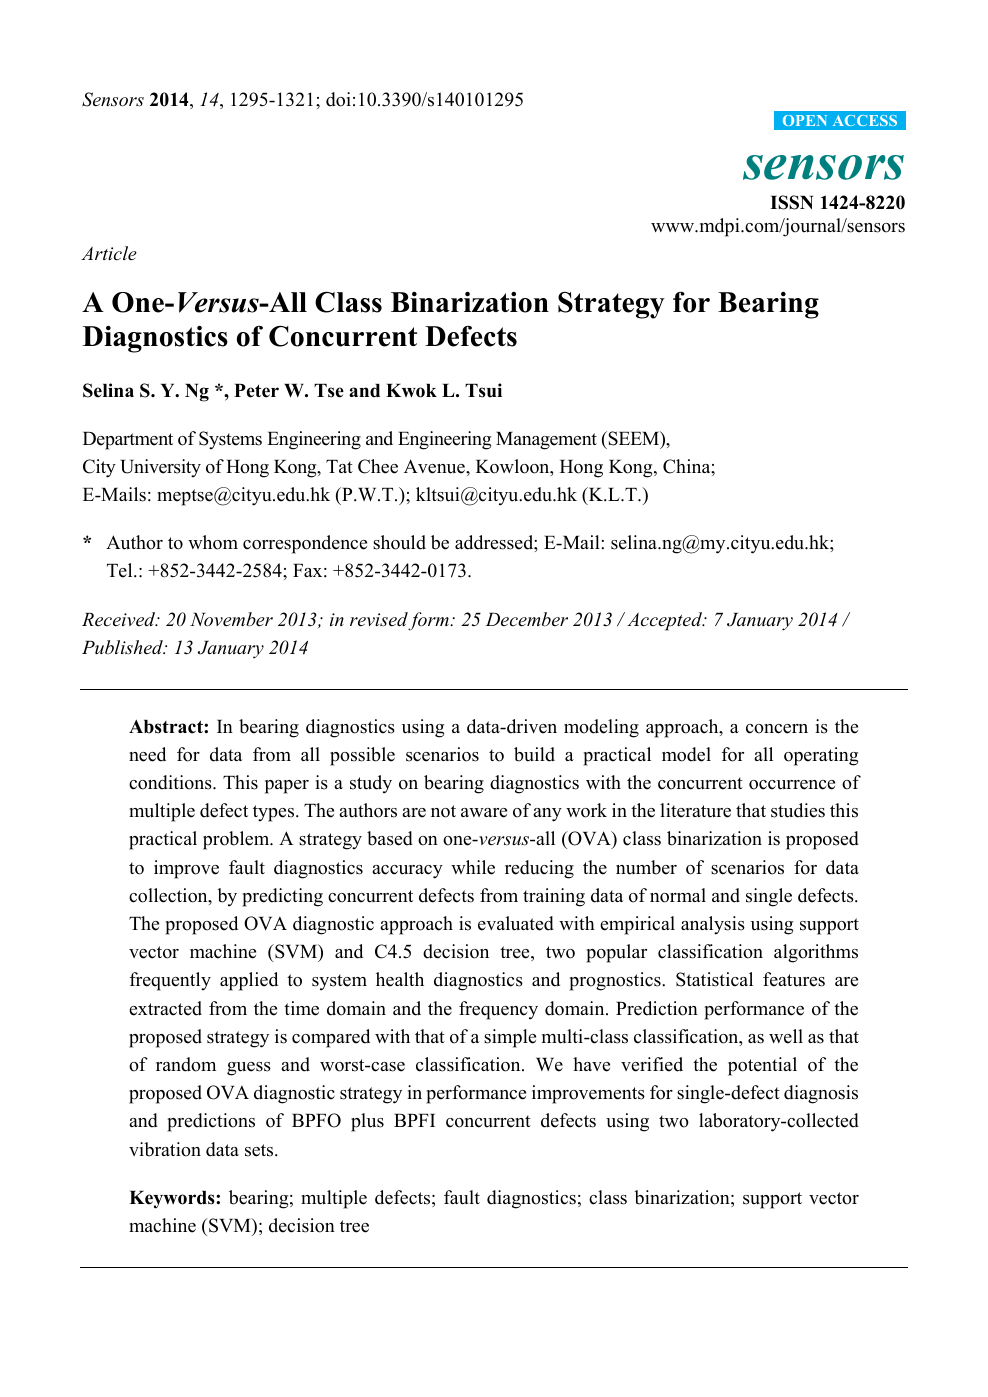 A One-Versus-All Class Binarization Strategy for Bearing